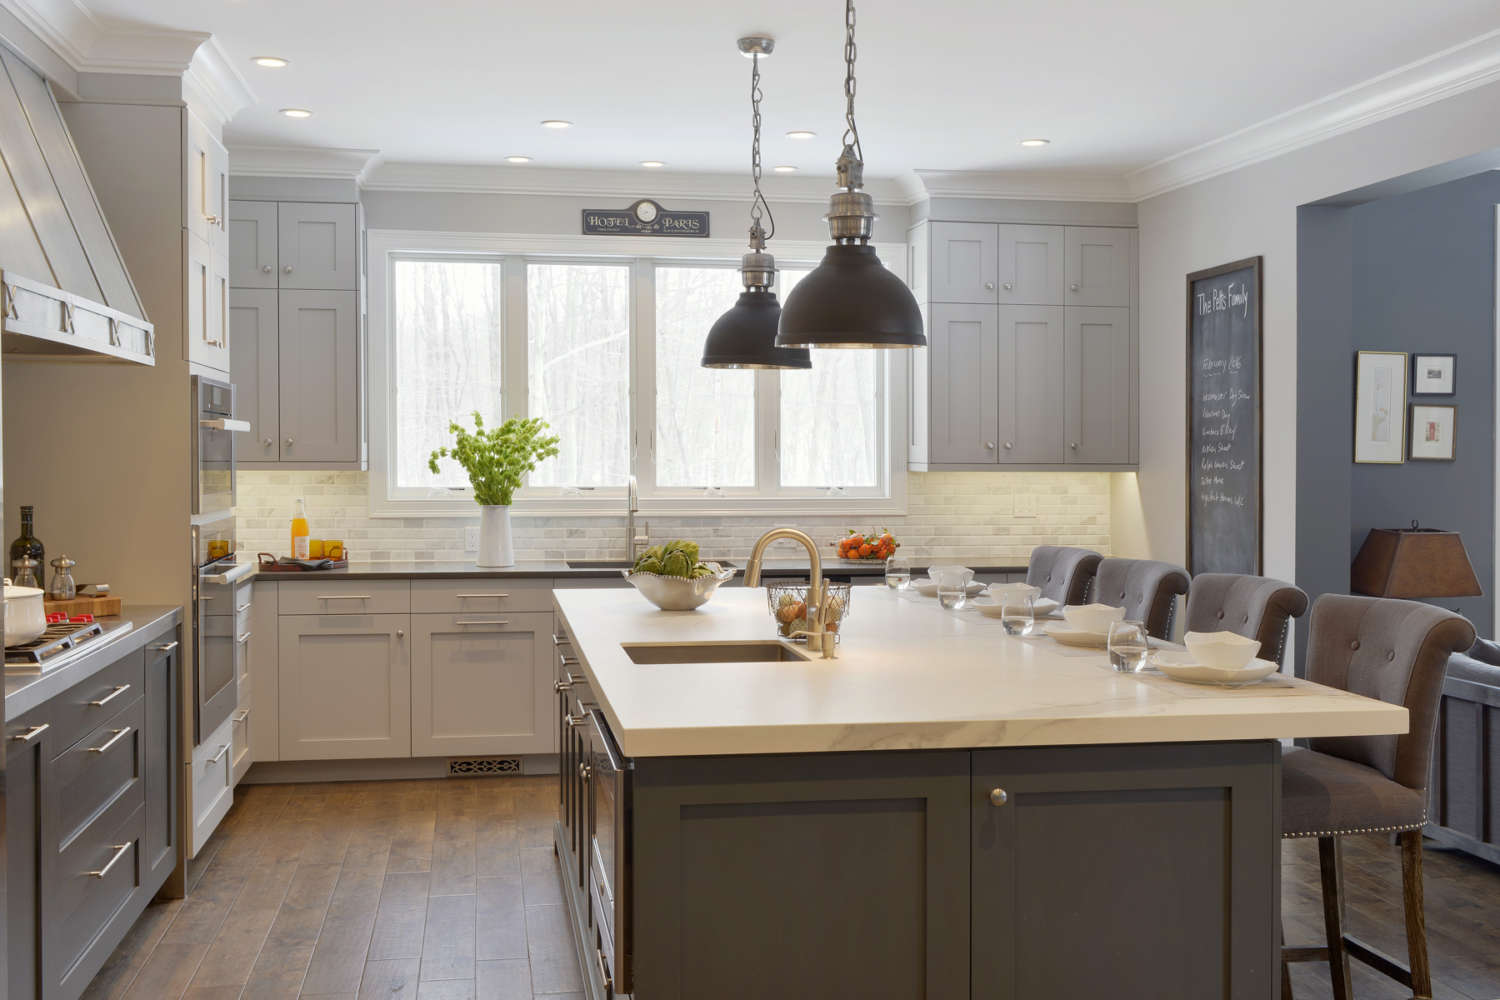 Expansive kitchen and living space features an island with fully custom, frameless shaker style dark grey painted Bilotta Cabinetry and light quartz countertop. The island is lit with two dark dray industrial dendant lights. Design by Paulette Gambacorta of Bilotta Kitchens.